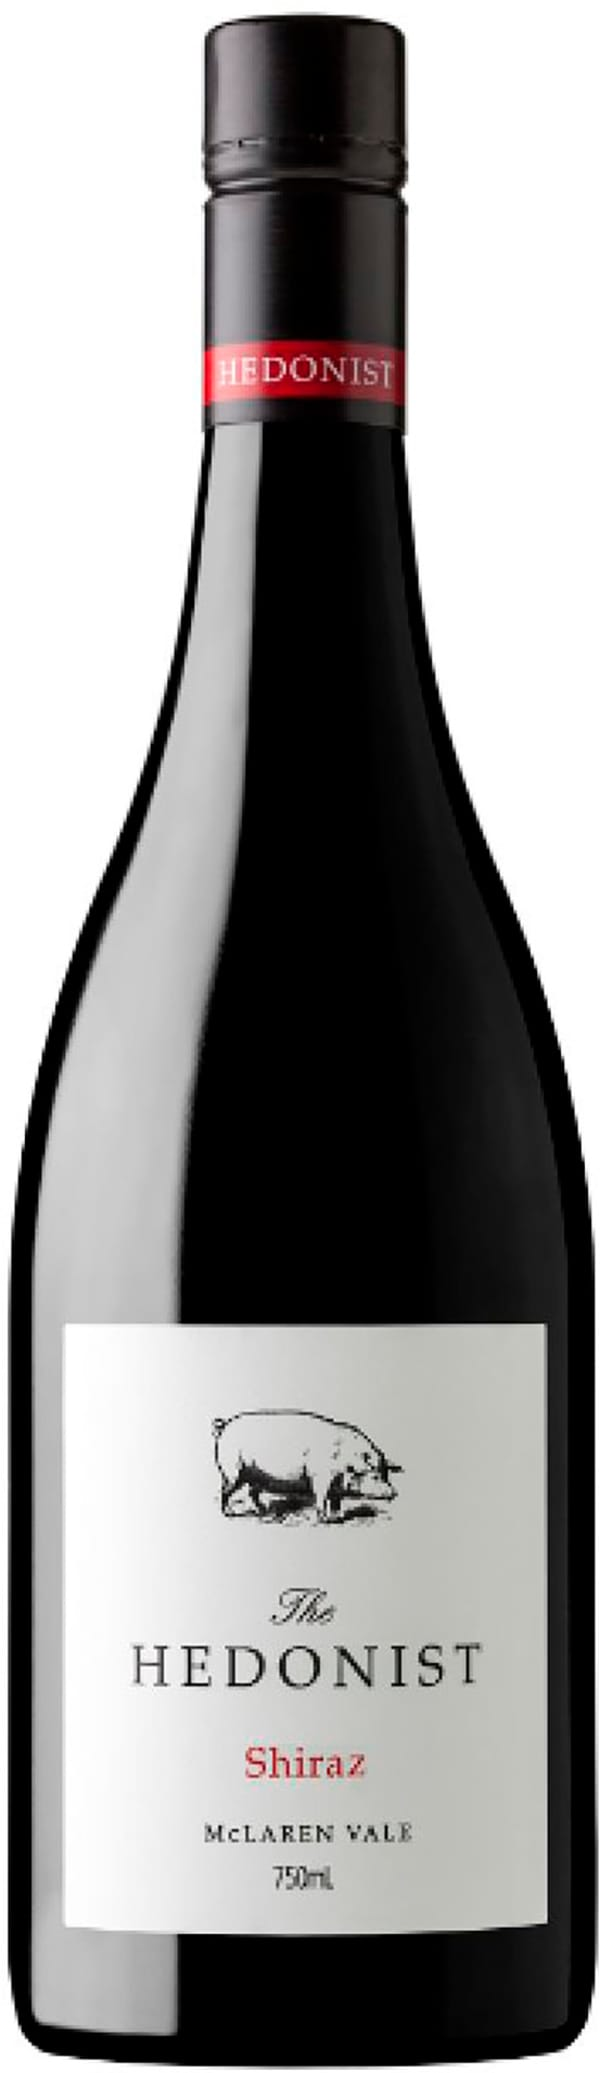 The Hedonist Shiraz 2017